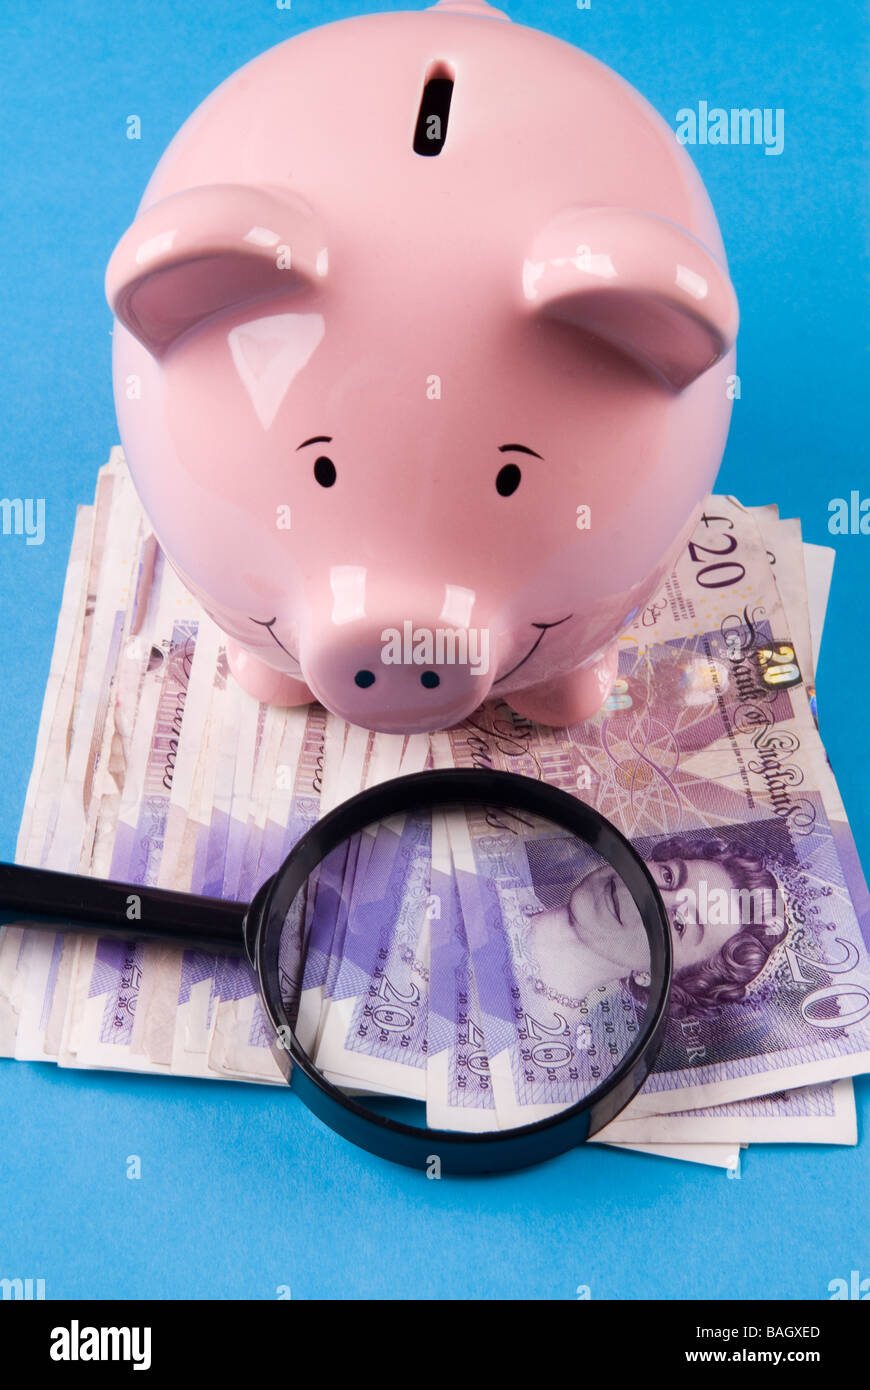 Piggy bank with magnifying lens over British money - Stock Image